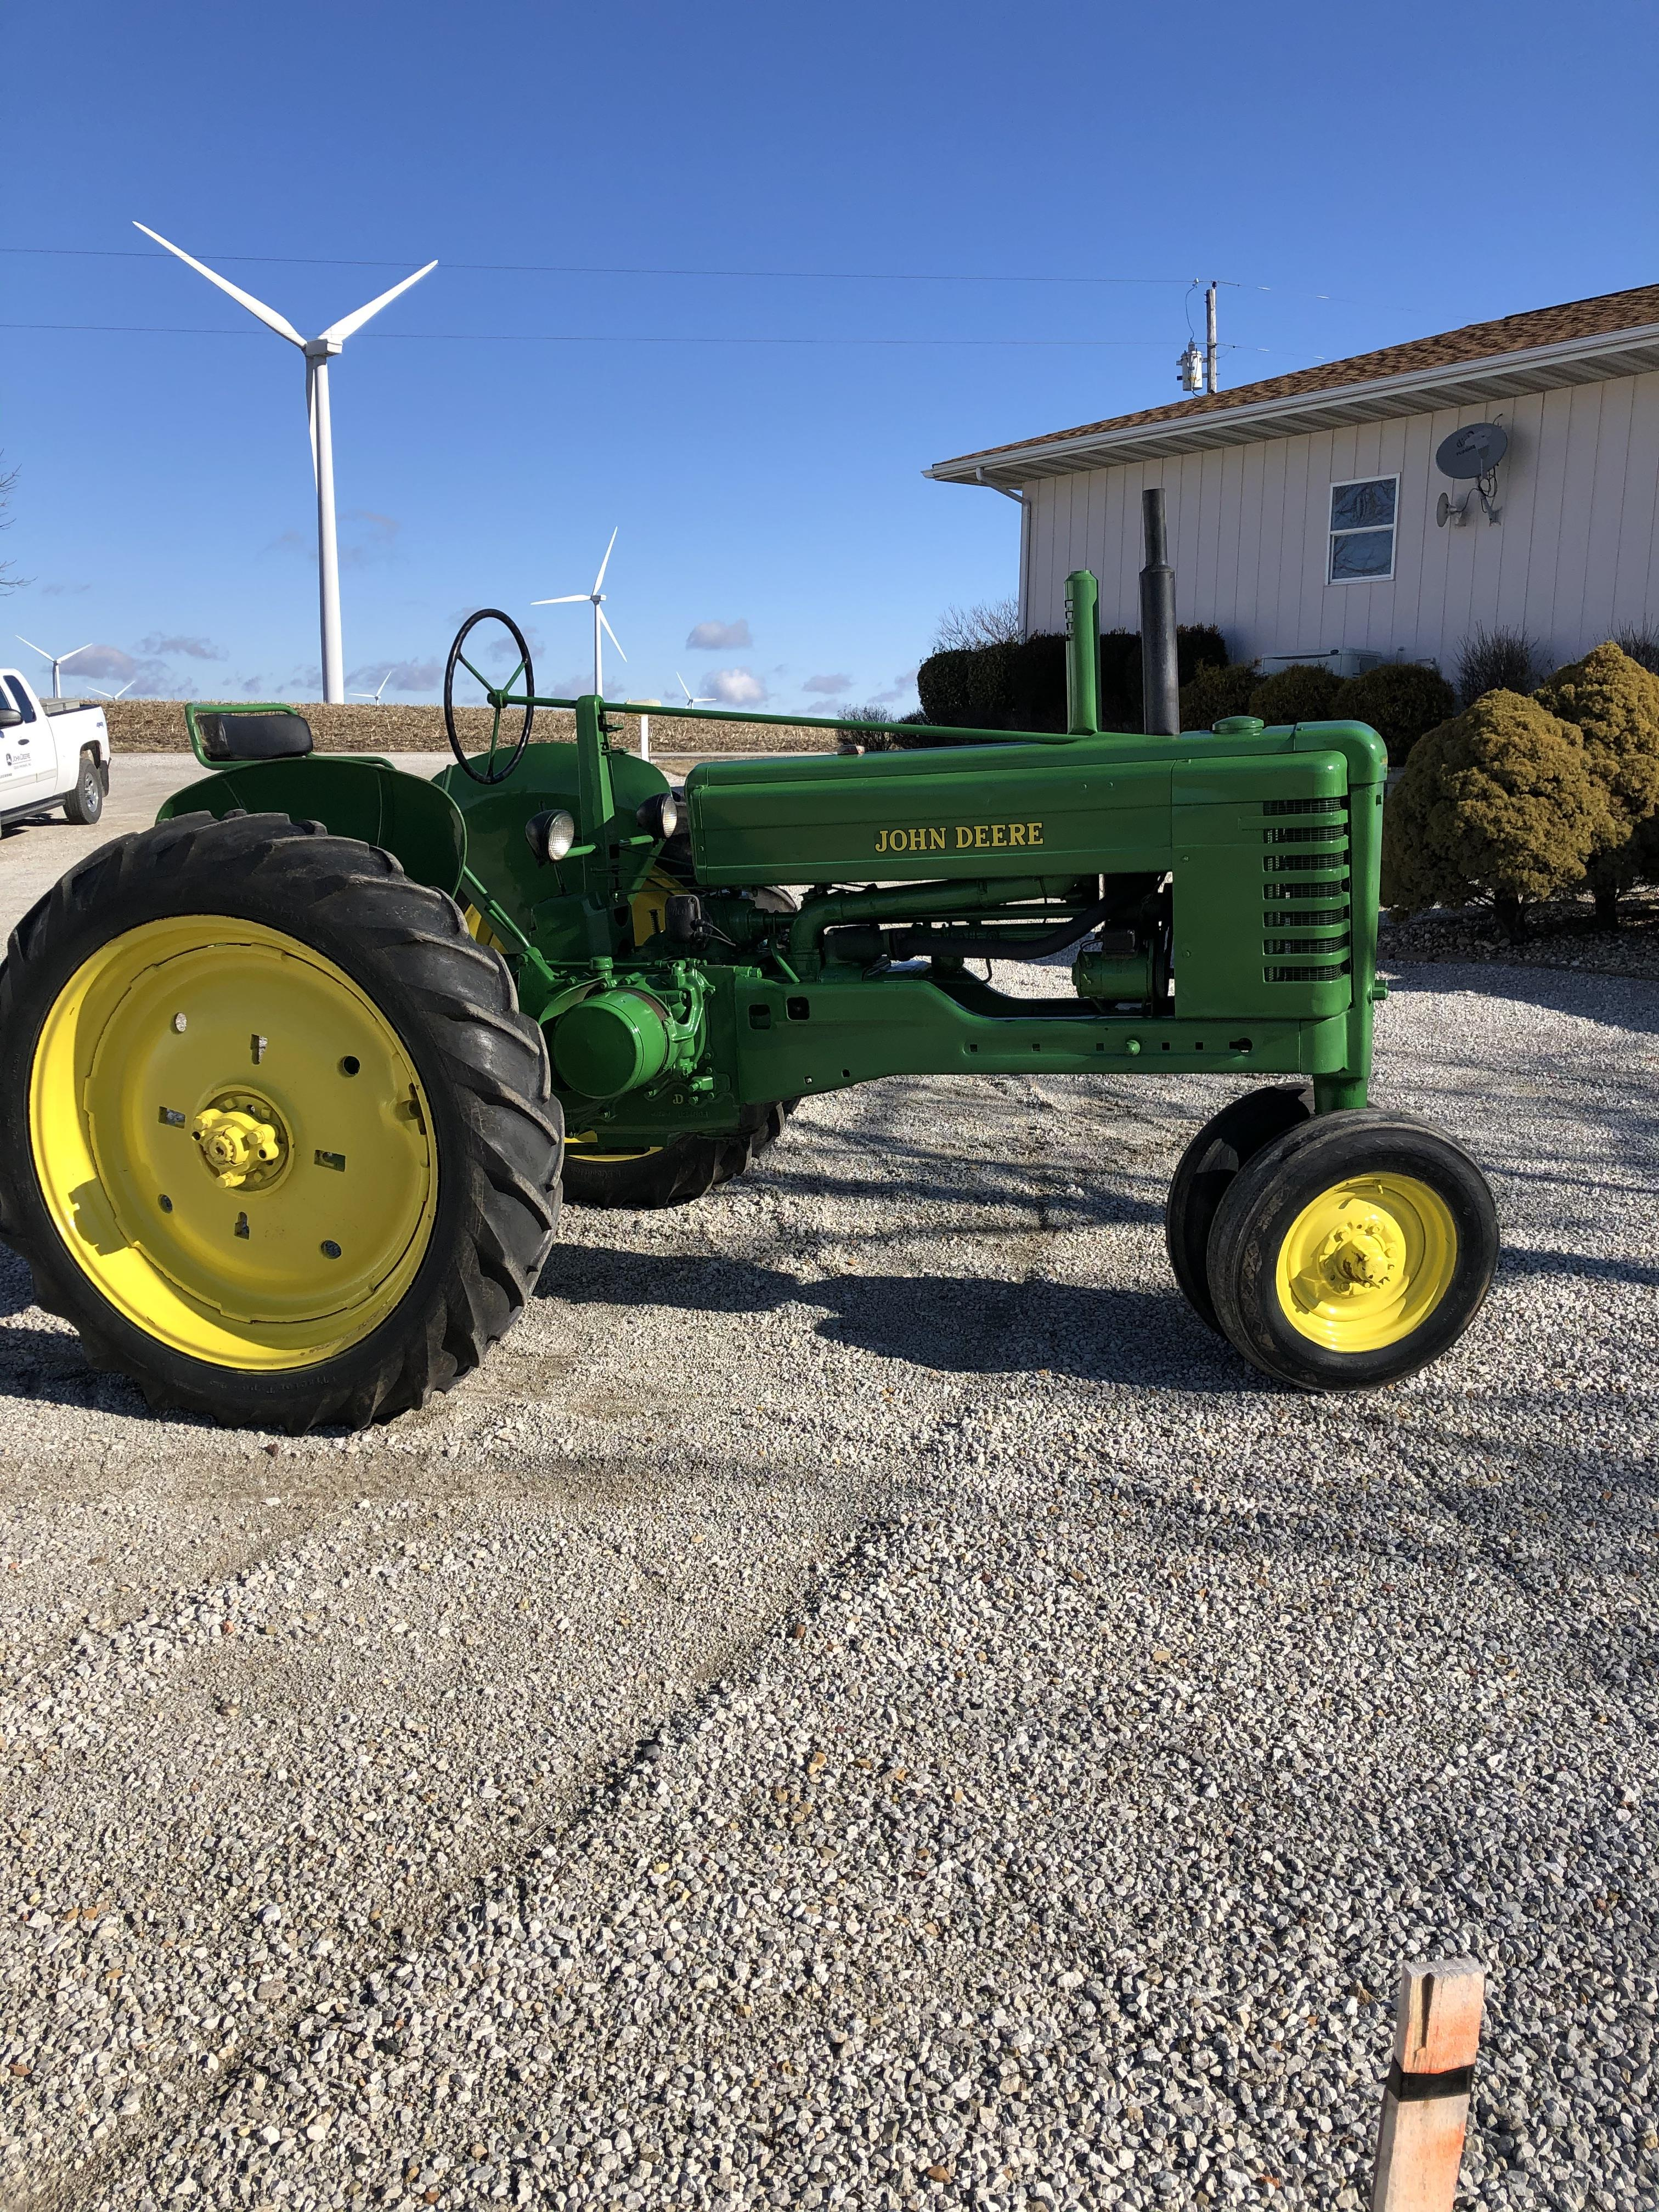 1951 John Deere B w/ Fenders Restored Sharp Looking and Running Tractor